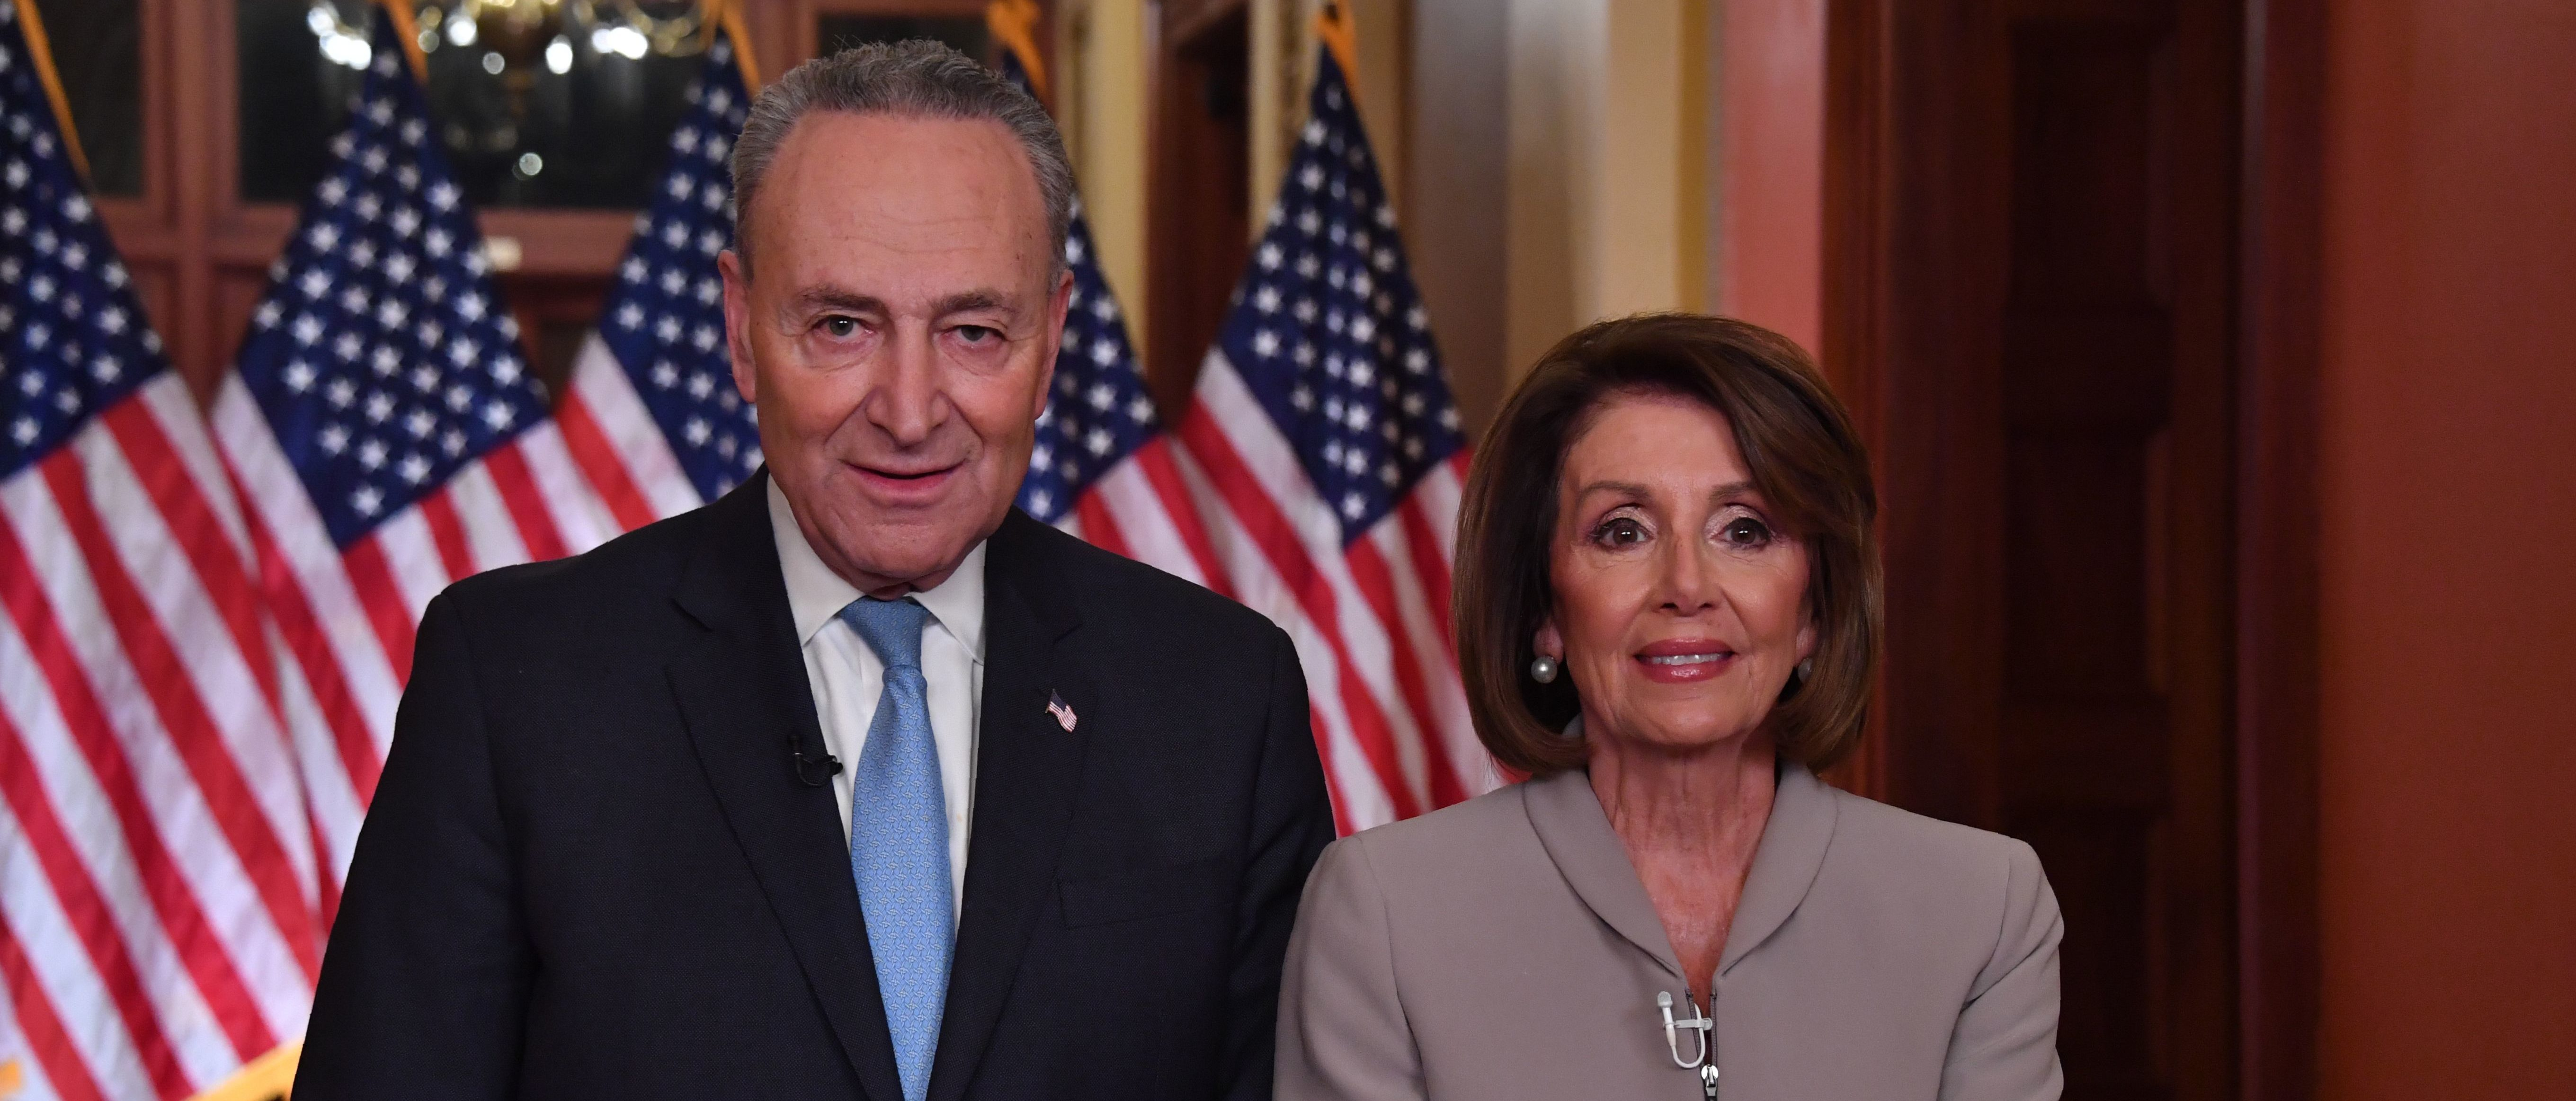 Rep. Nancy Pelosi and Sen. Chuck Schumer deliver an address on border security. (NICHOLAS KAMM/AFP/Getty Images)